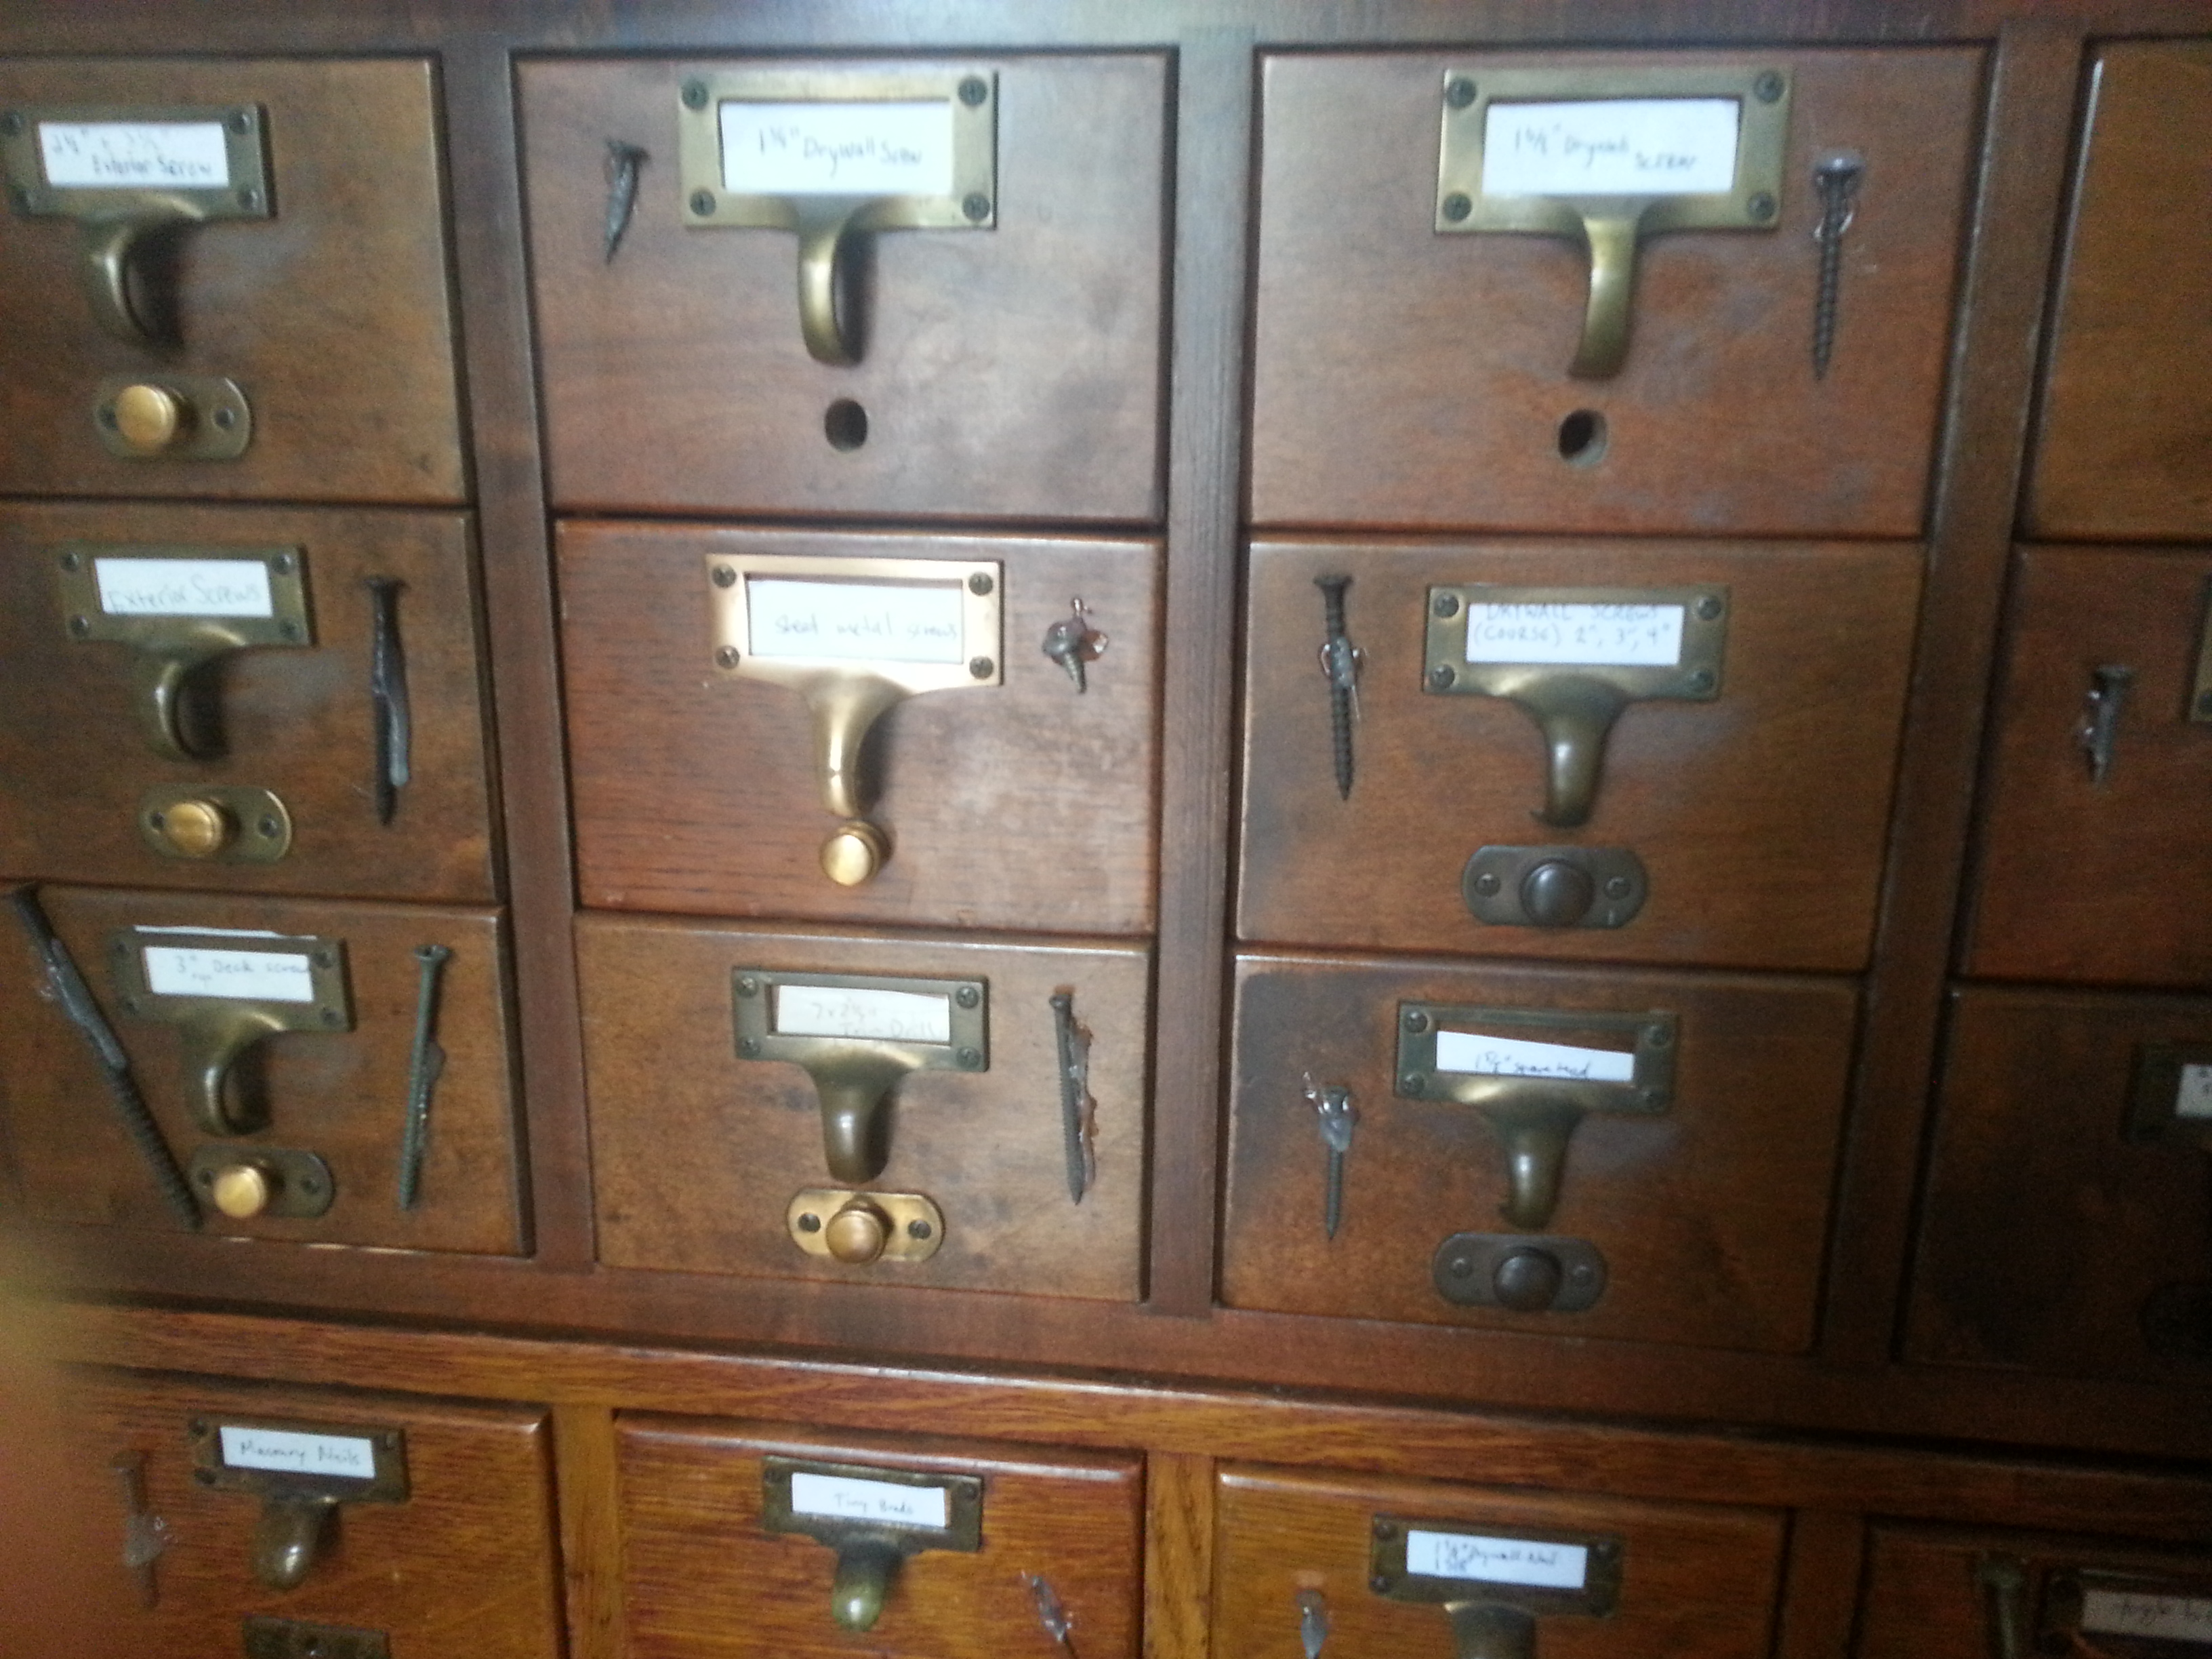 Old medical library card catalogue holds tool library screws